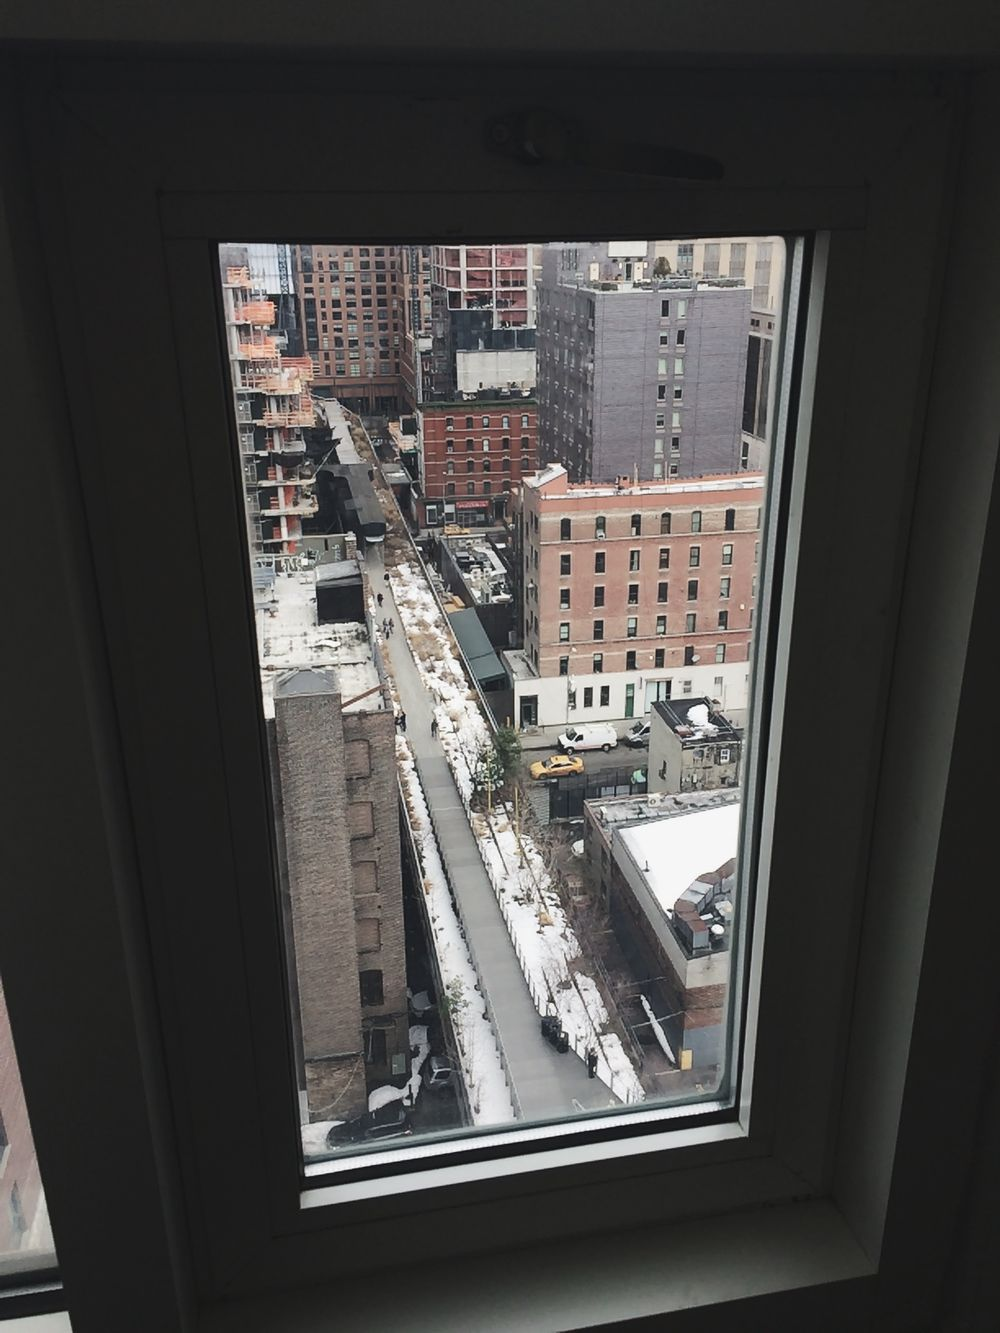 Above the Highline